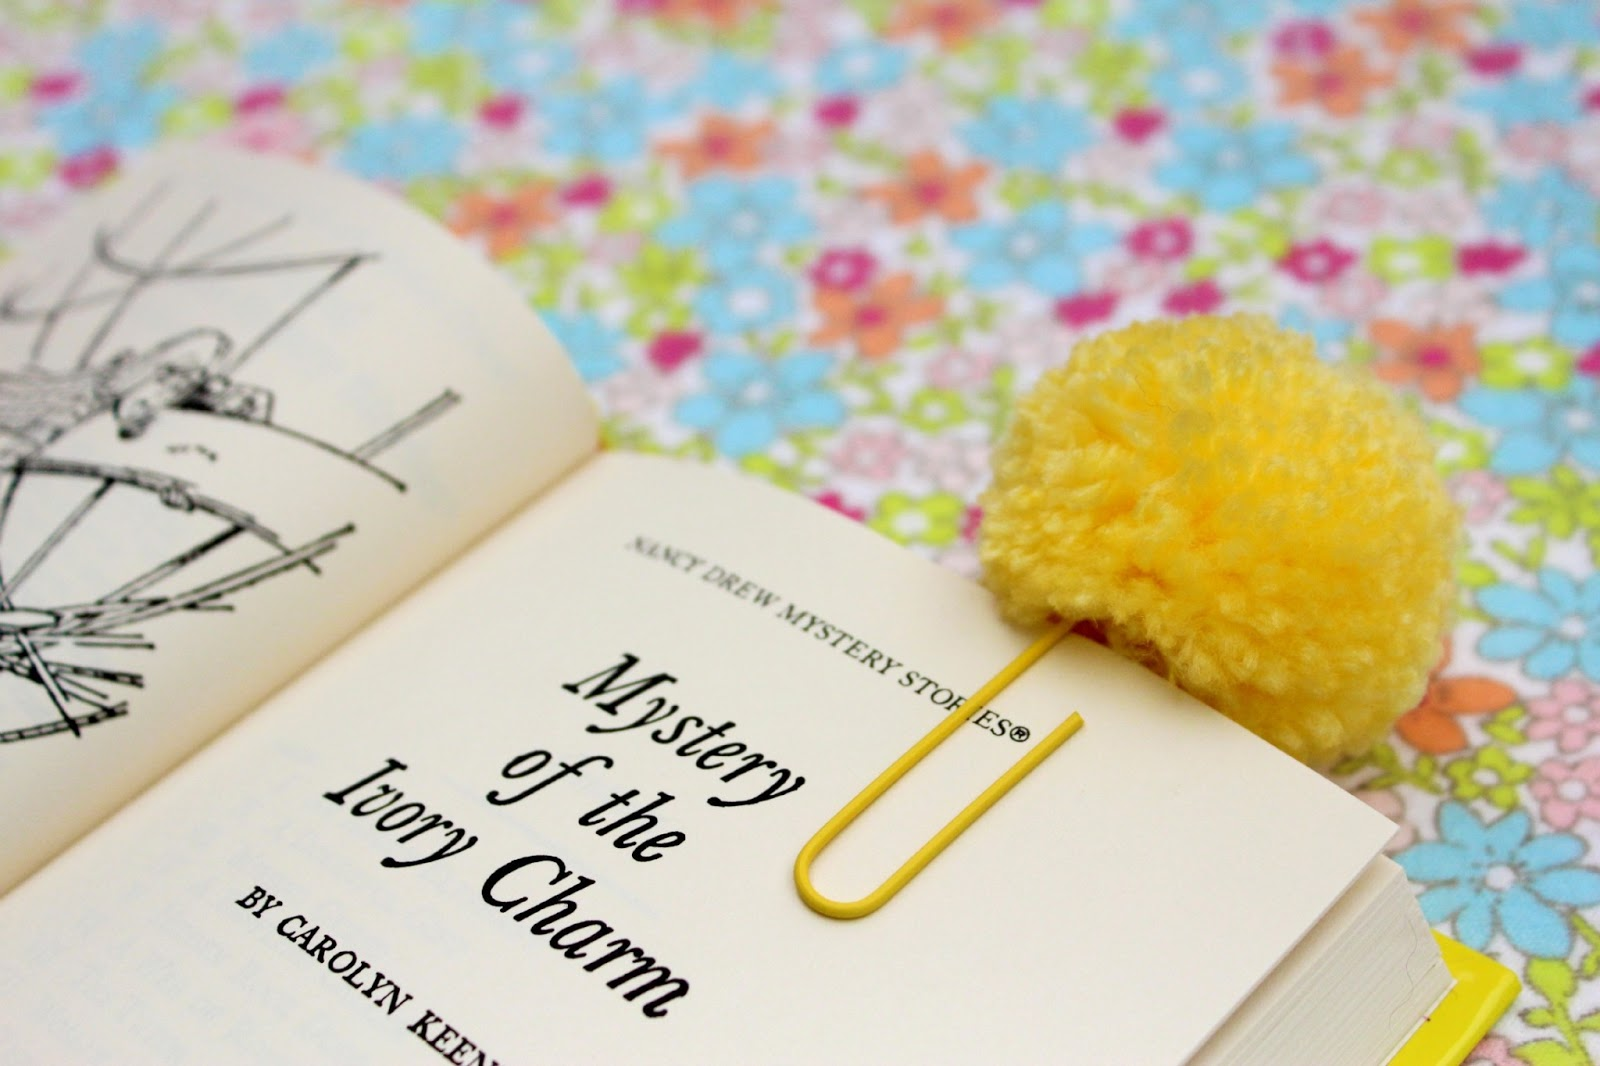 Raising up rubies blog paperclip pompom bookmarks - Manualidades con pompones ...